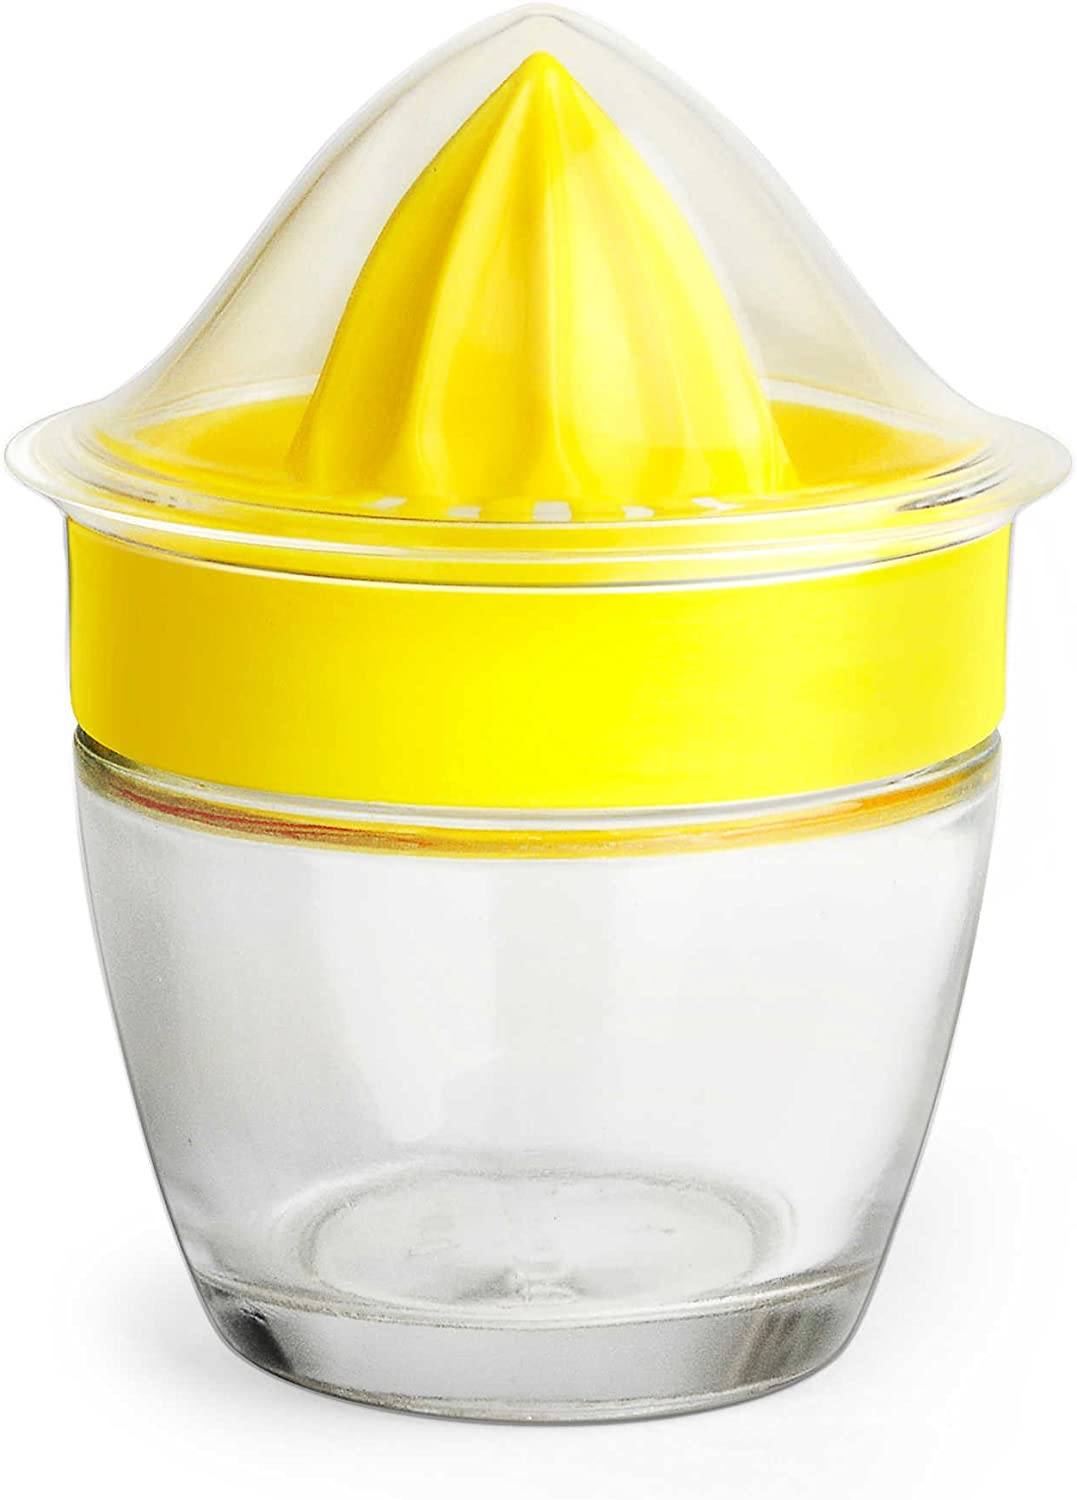 Prepara store Citrus Juicer Free shipping / New Lid with